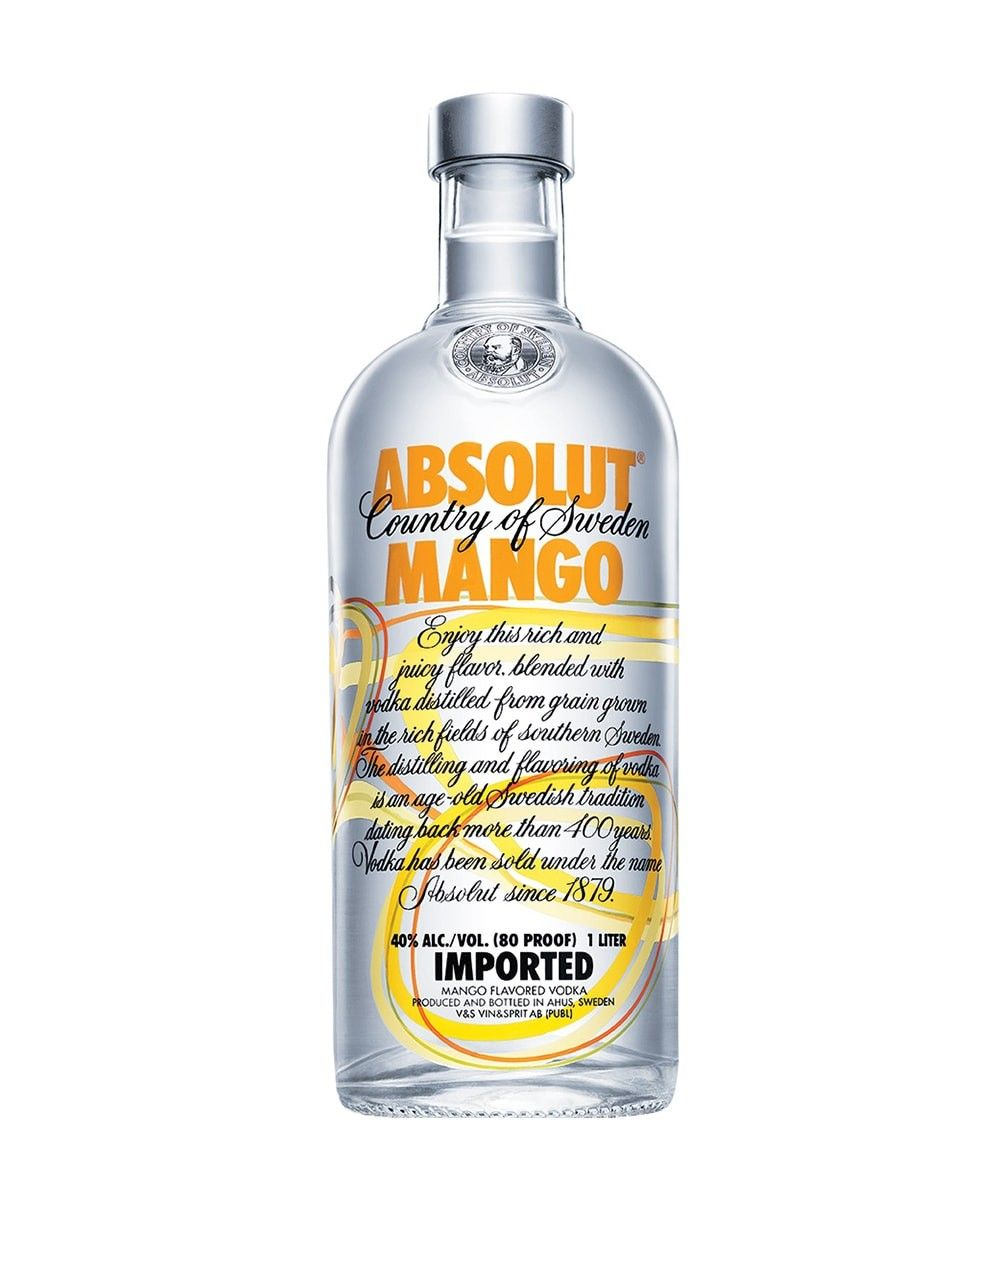 Absolut Mango Vodka Buy Online Or Send As A Gift